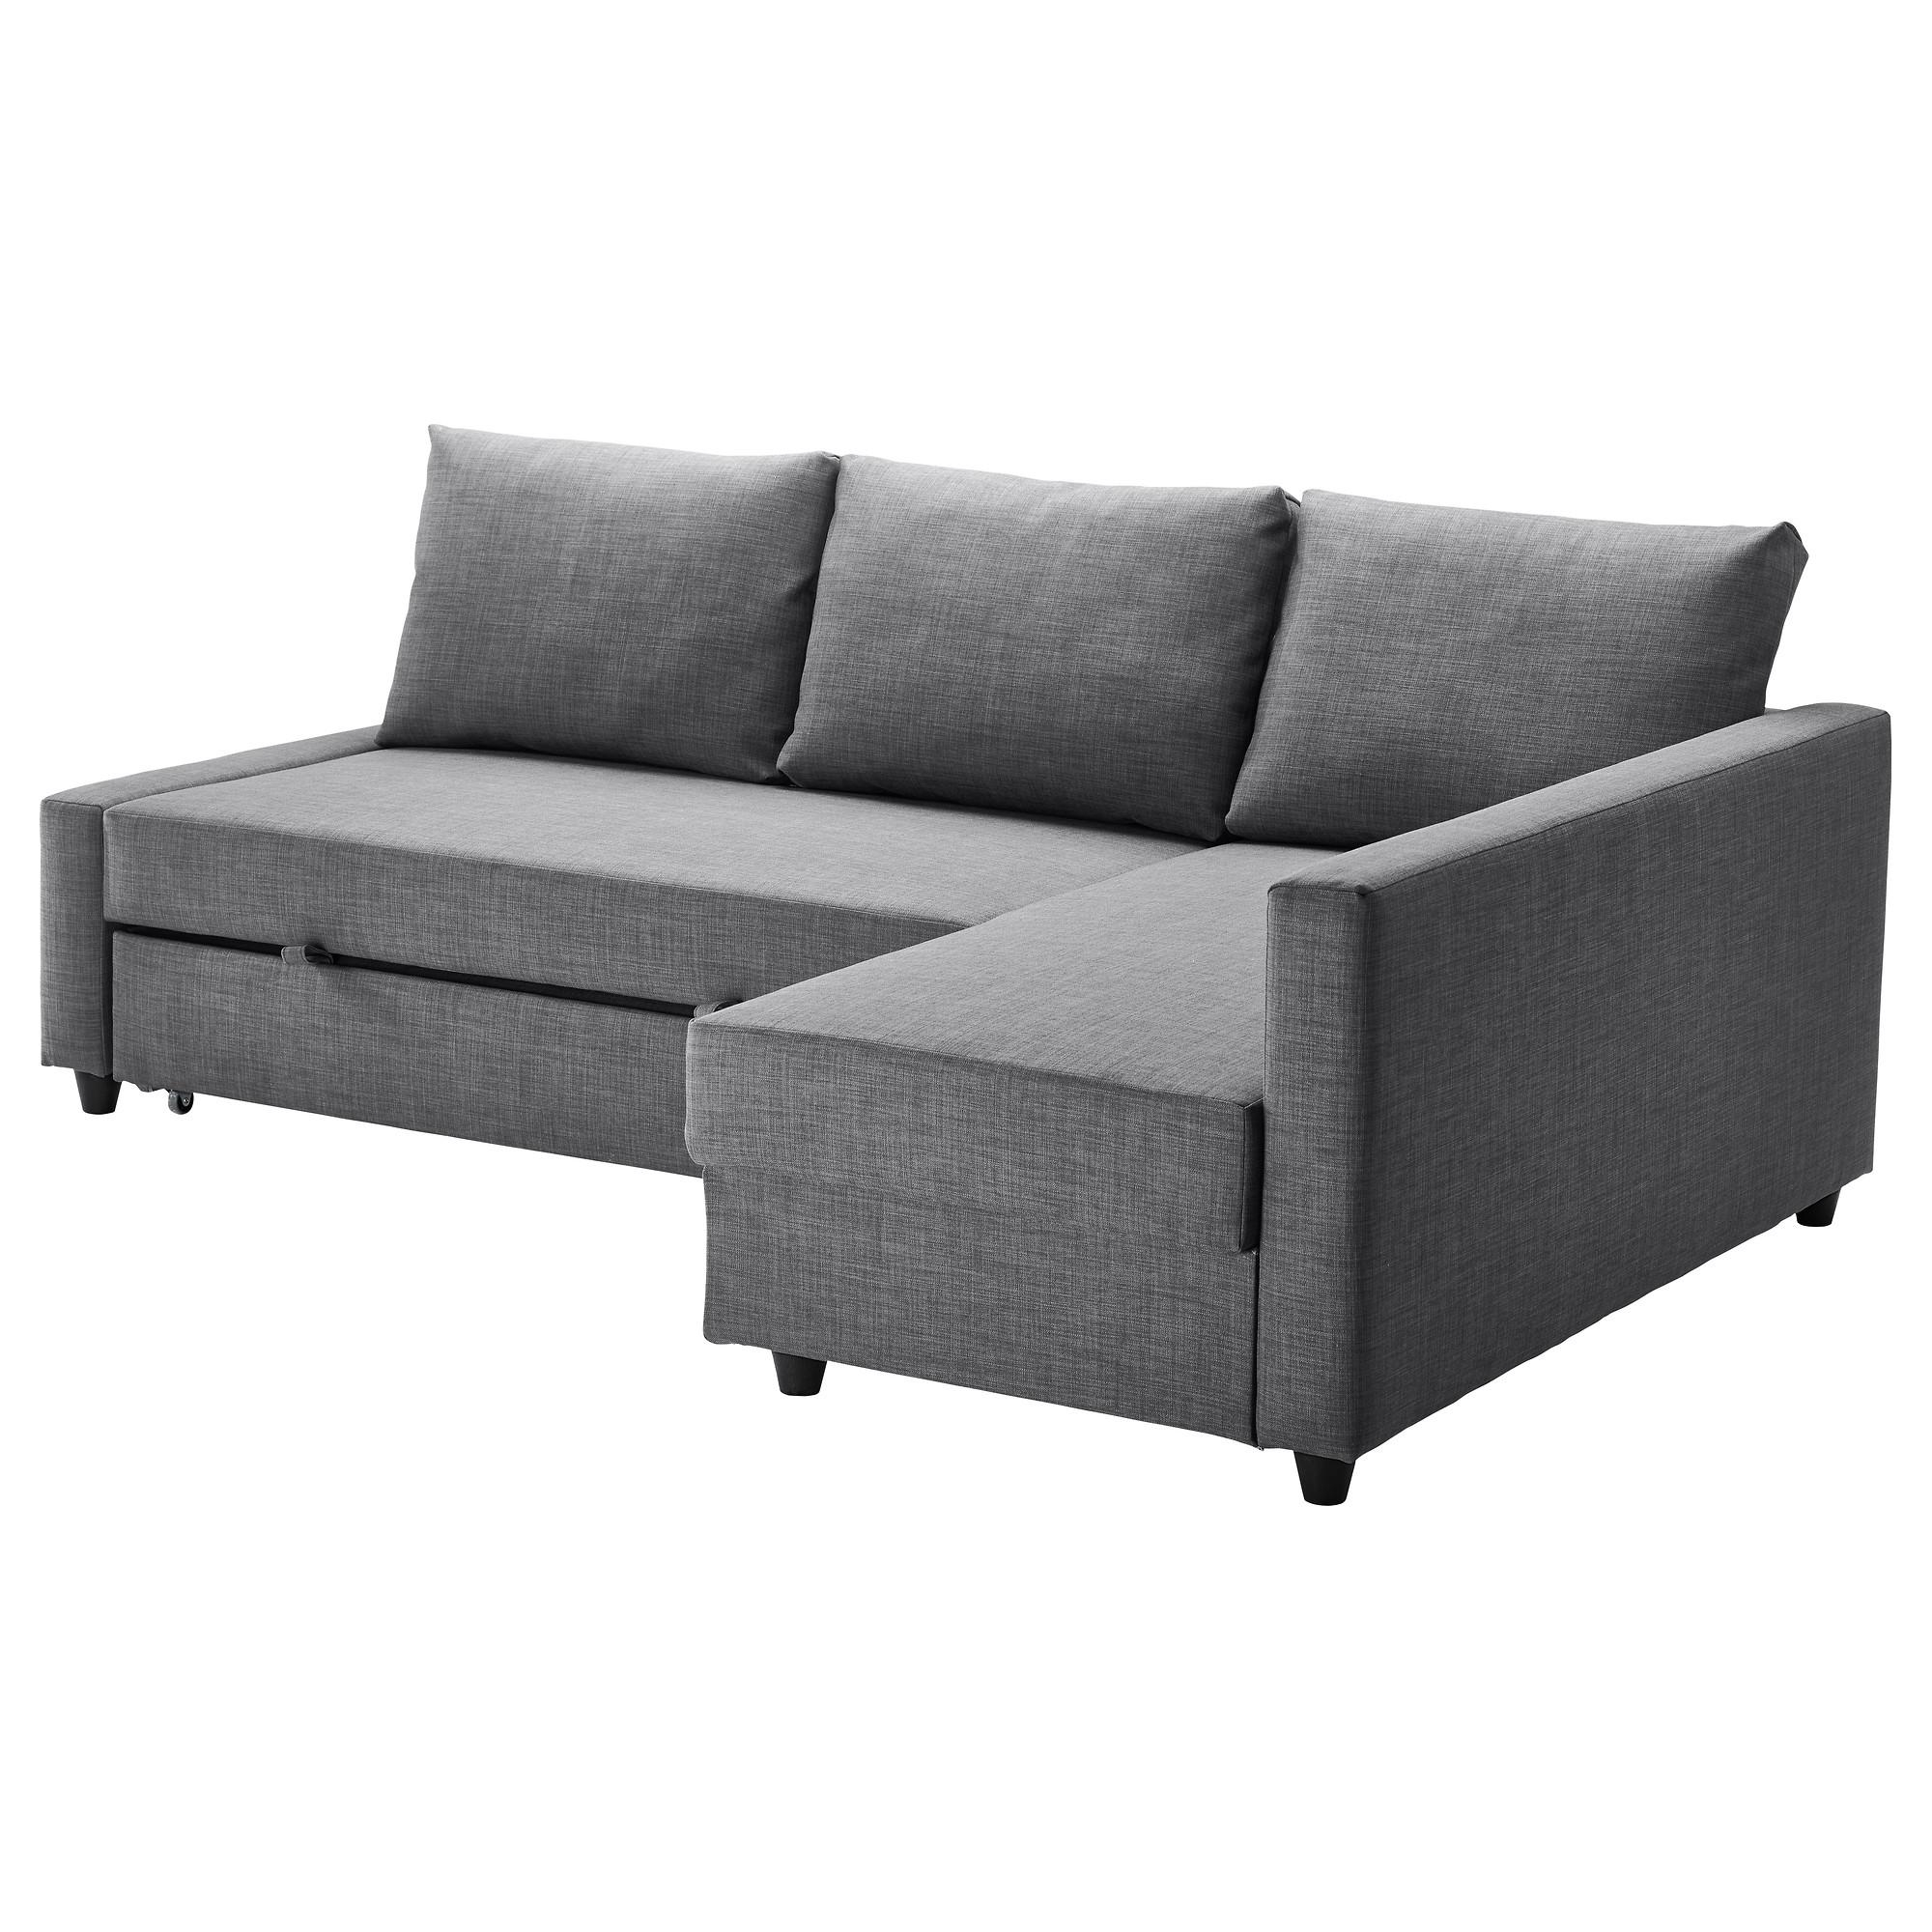 Sofa Beds & Futons – Ikea Regarding Sofa Beds (Image 11 of 20)